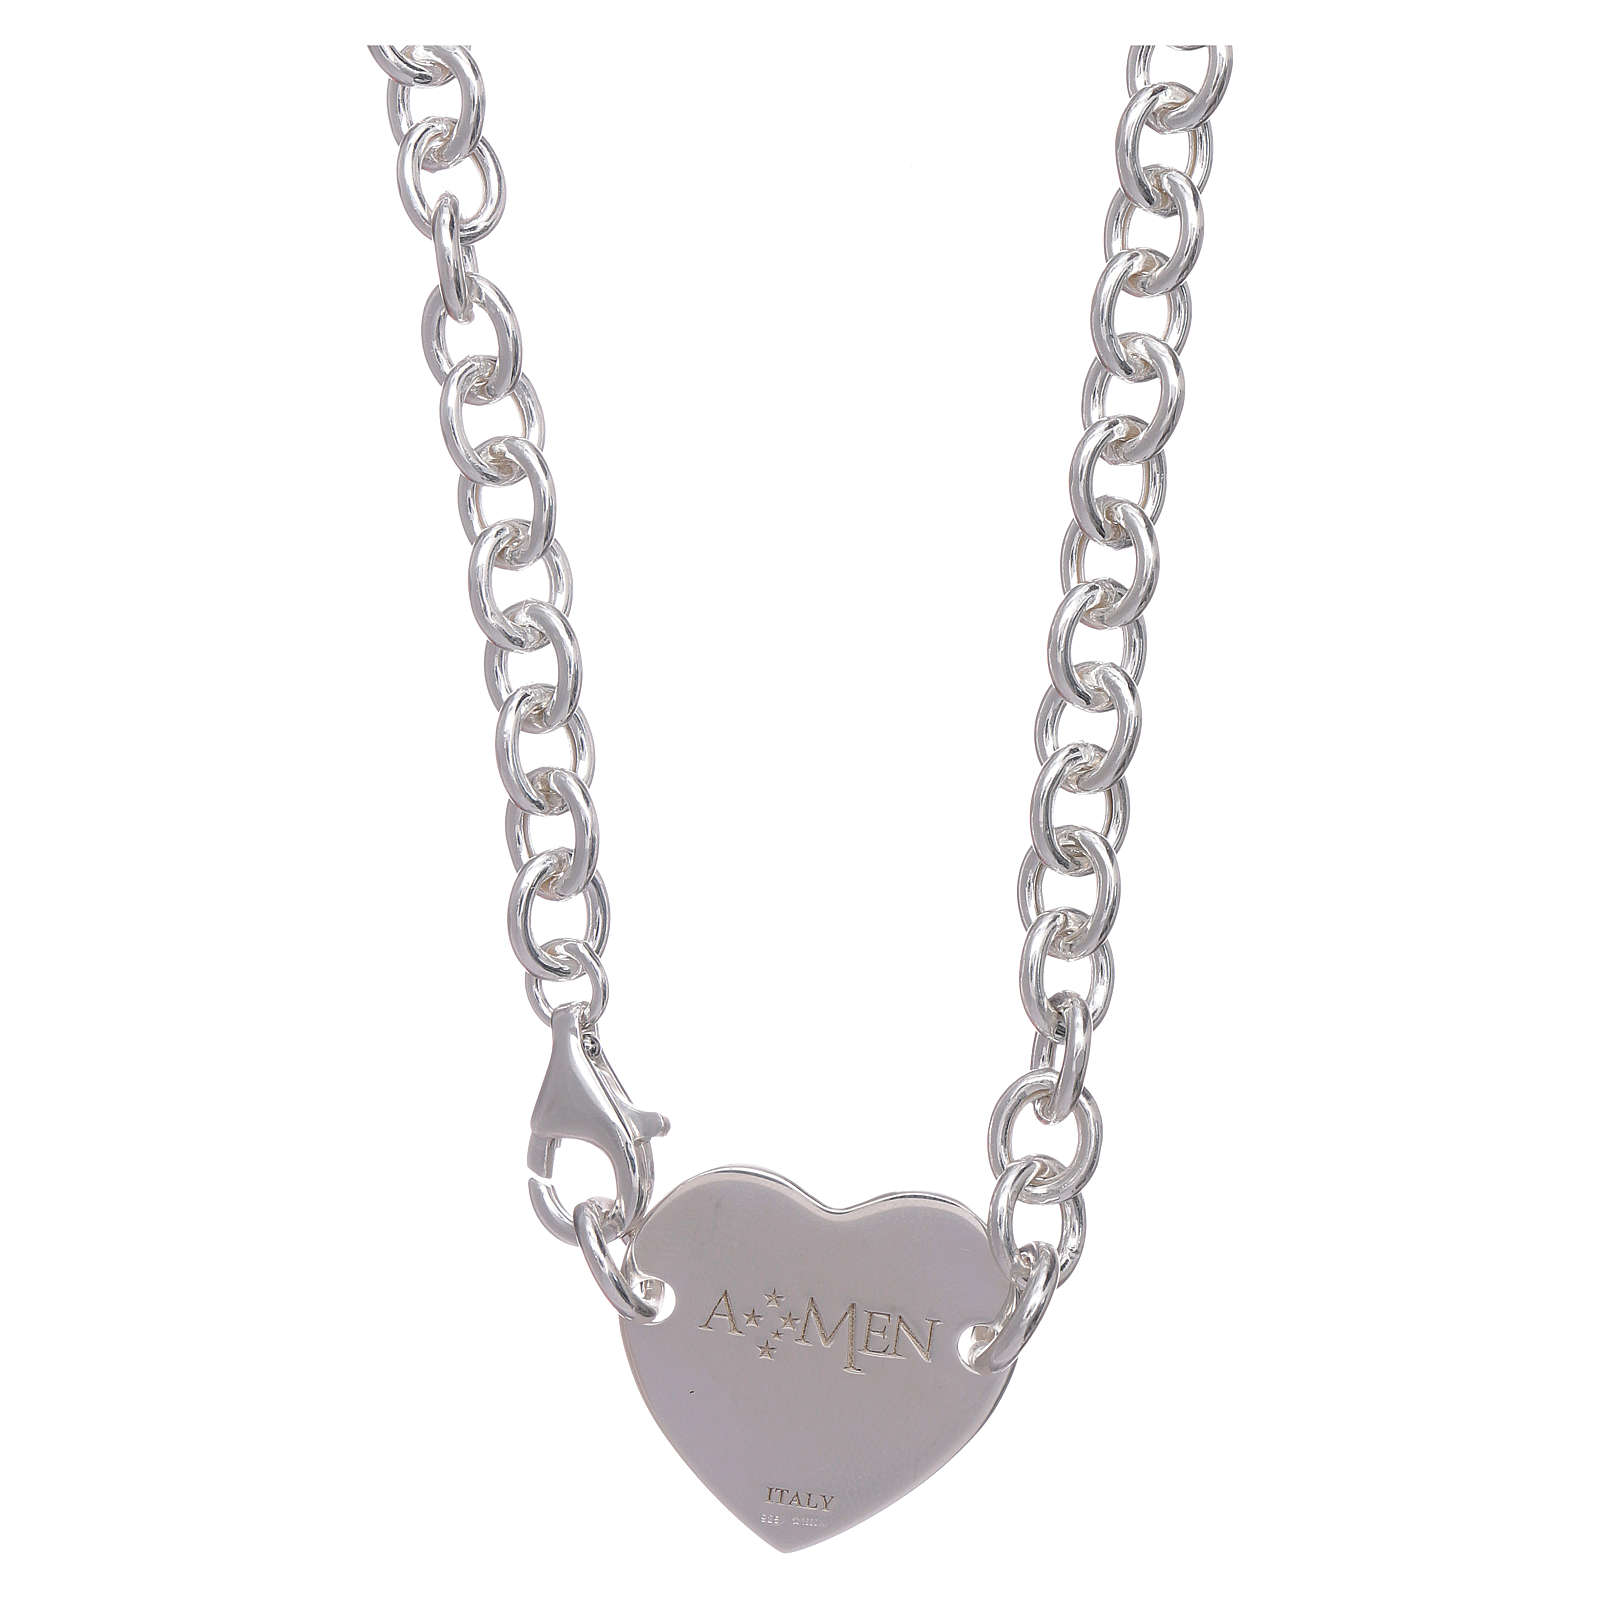 AMEN necklace in 925 sterling silver with heart 4